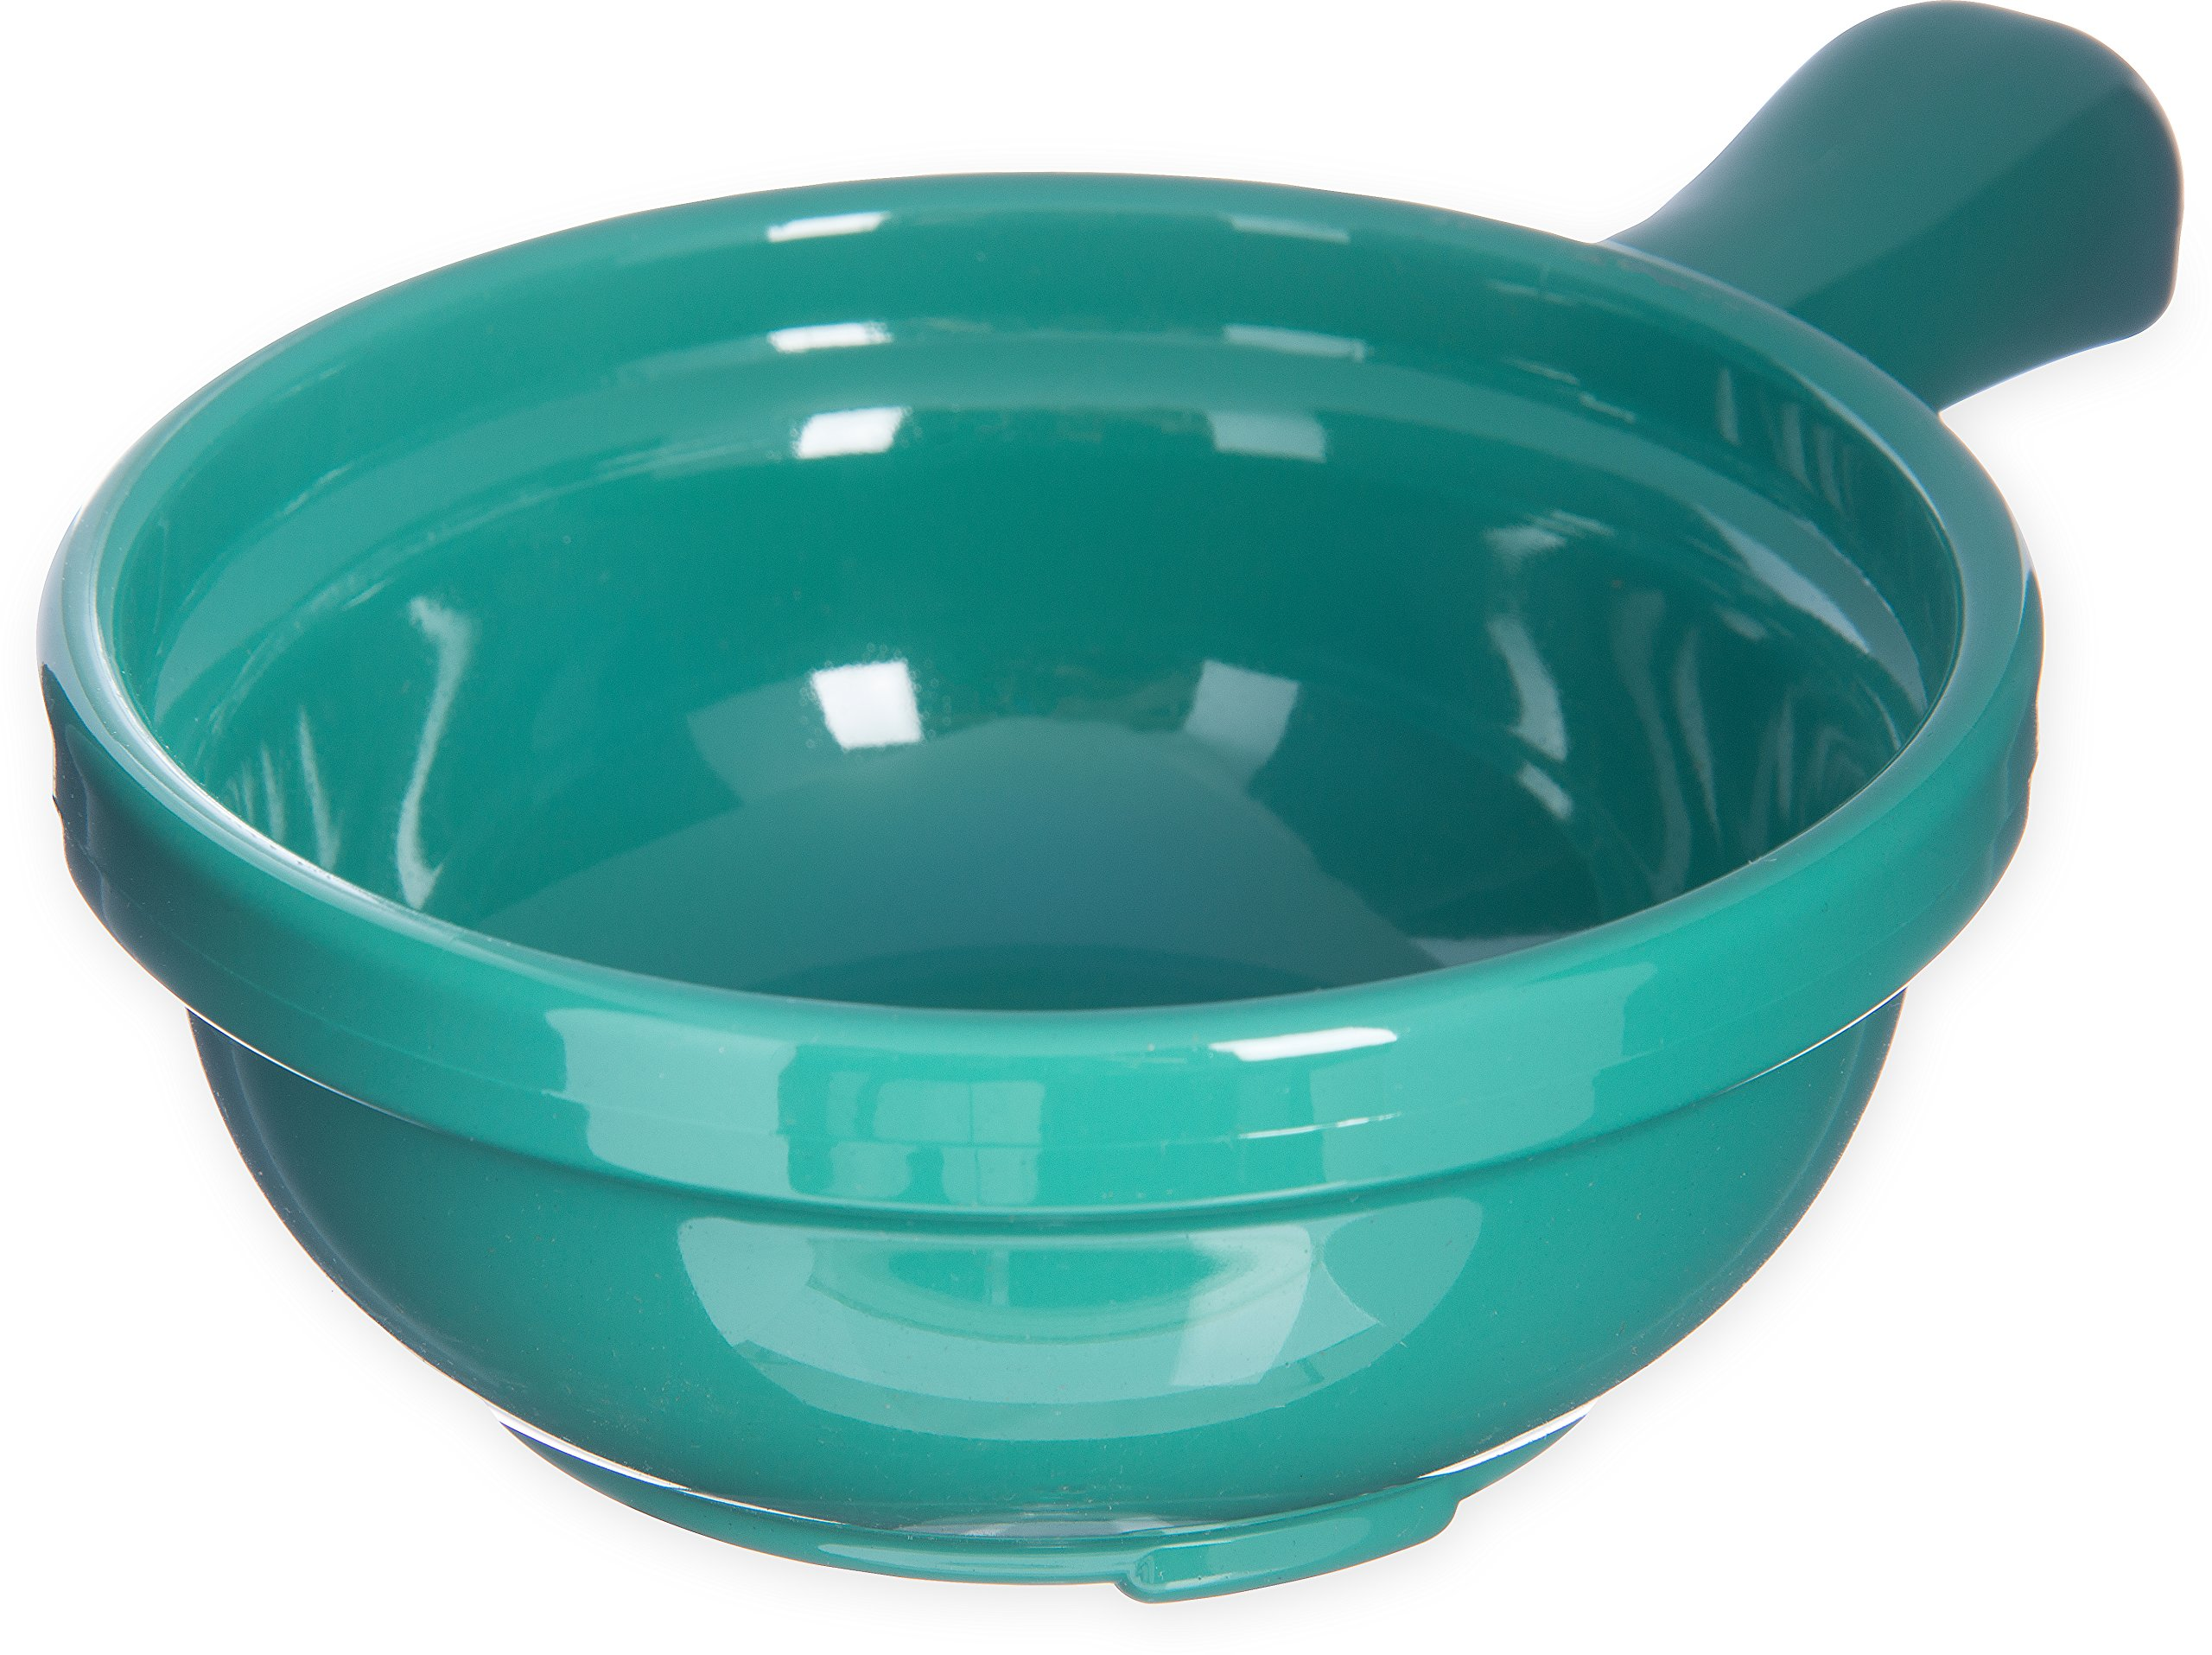 Carlisle 700609 Plastic Handled Soup Bowl, 8 oz., Meadow Green (Pack of 24)